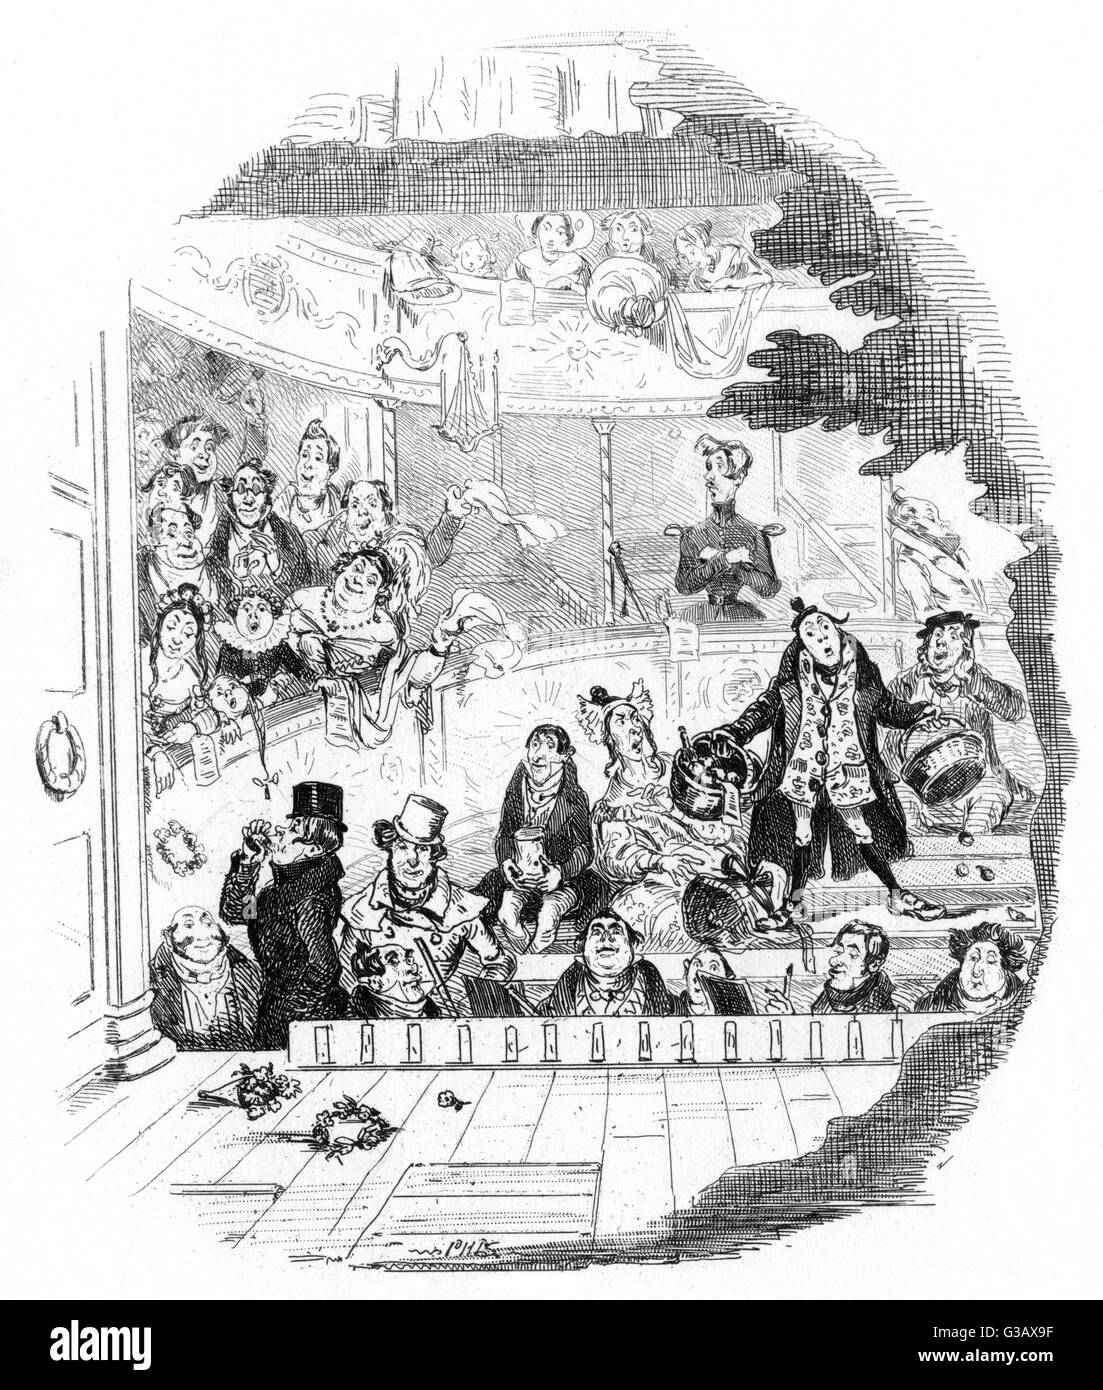 The great bespeak for Miss  Snevellicci.        Date: First published: 1838-39 - Stock Image